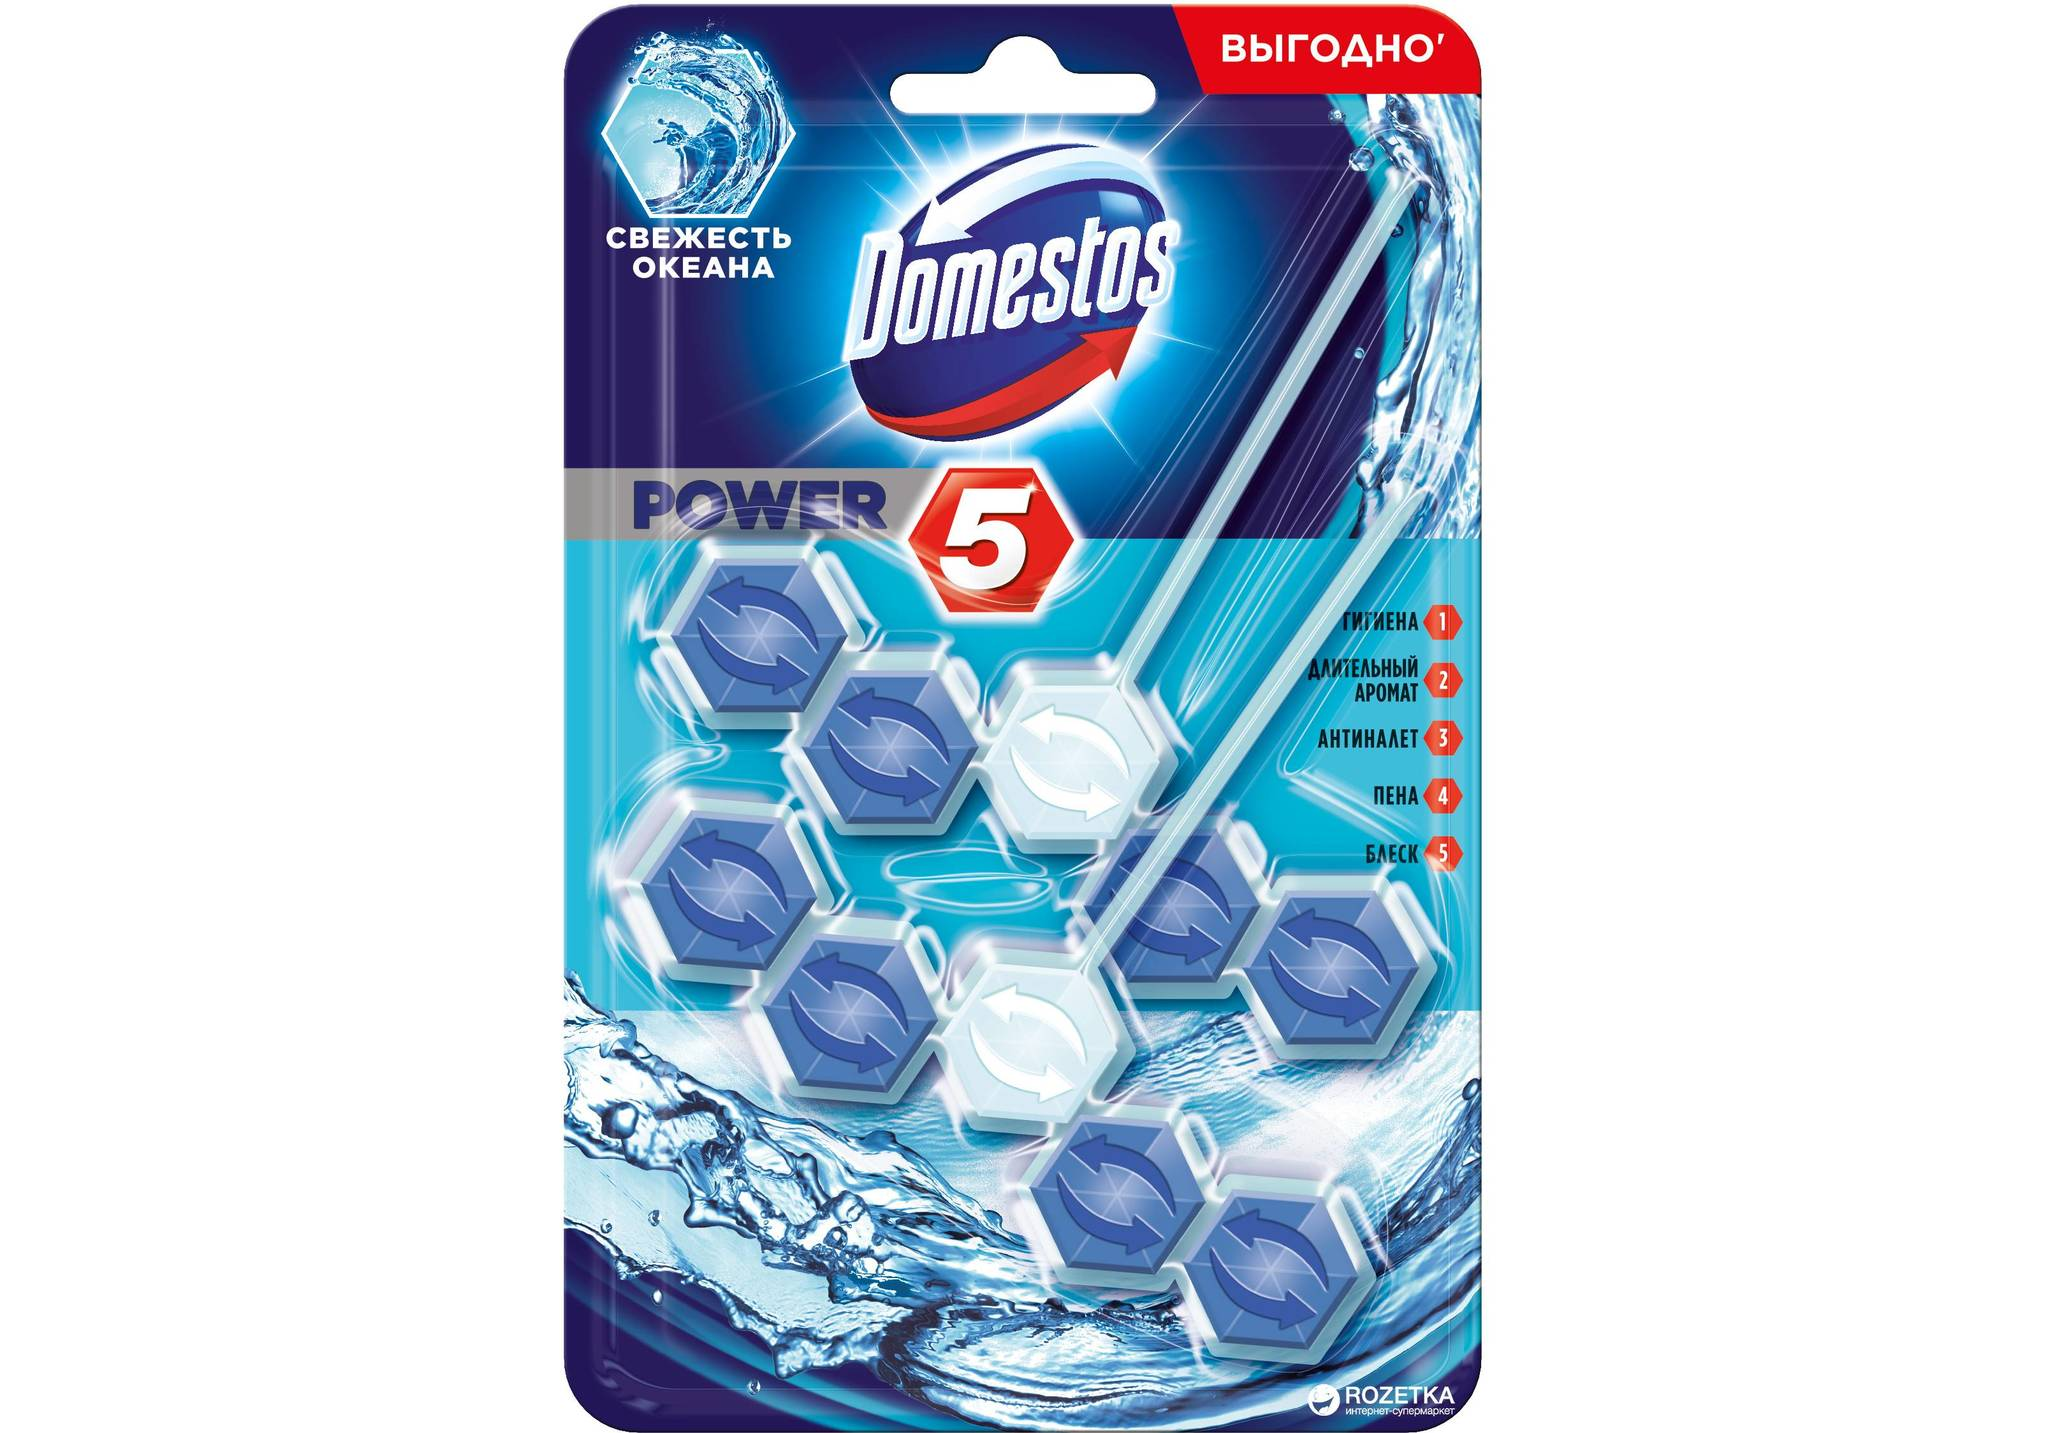 D:\products\copy_domestos_8710447326039_5aa816831ce42_images_3531069631.jpg